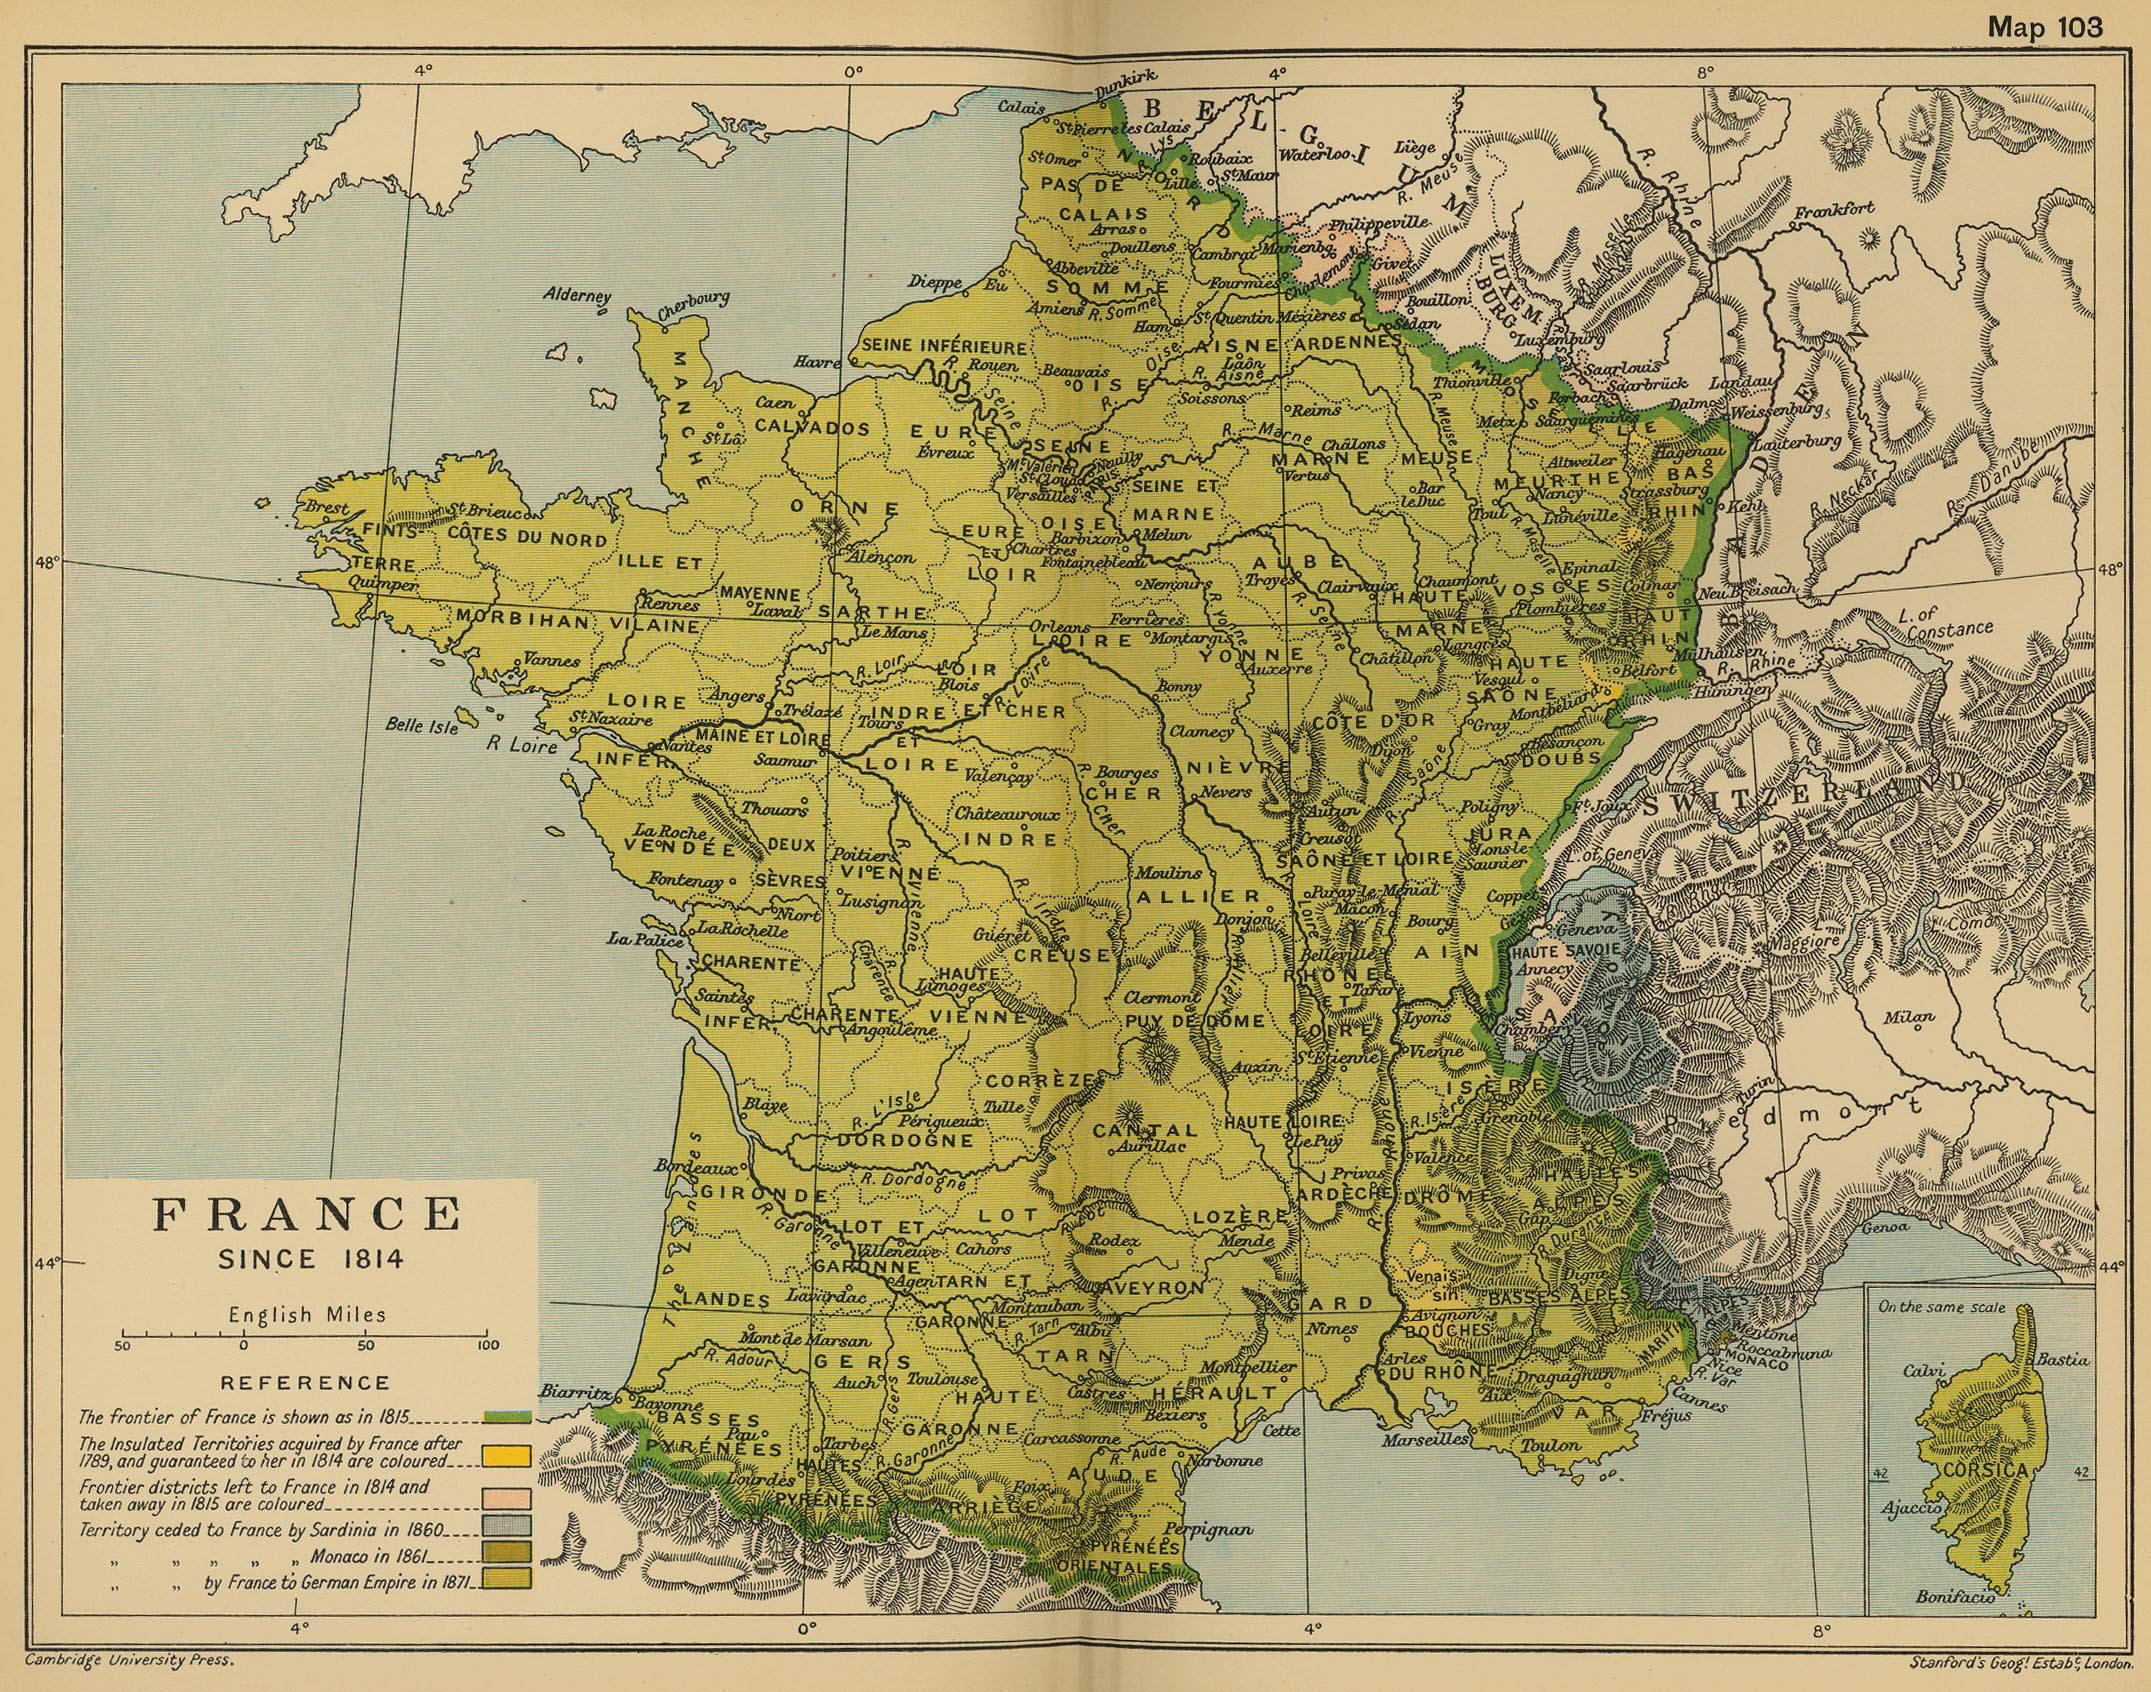 Map of France in 1814